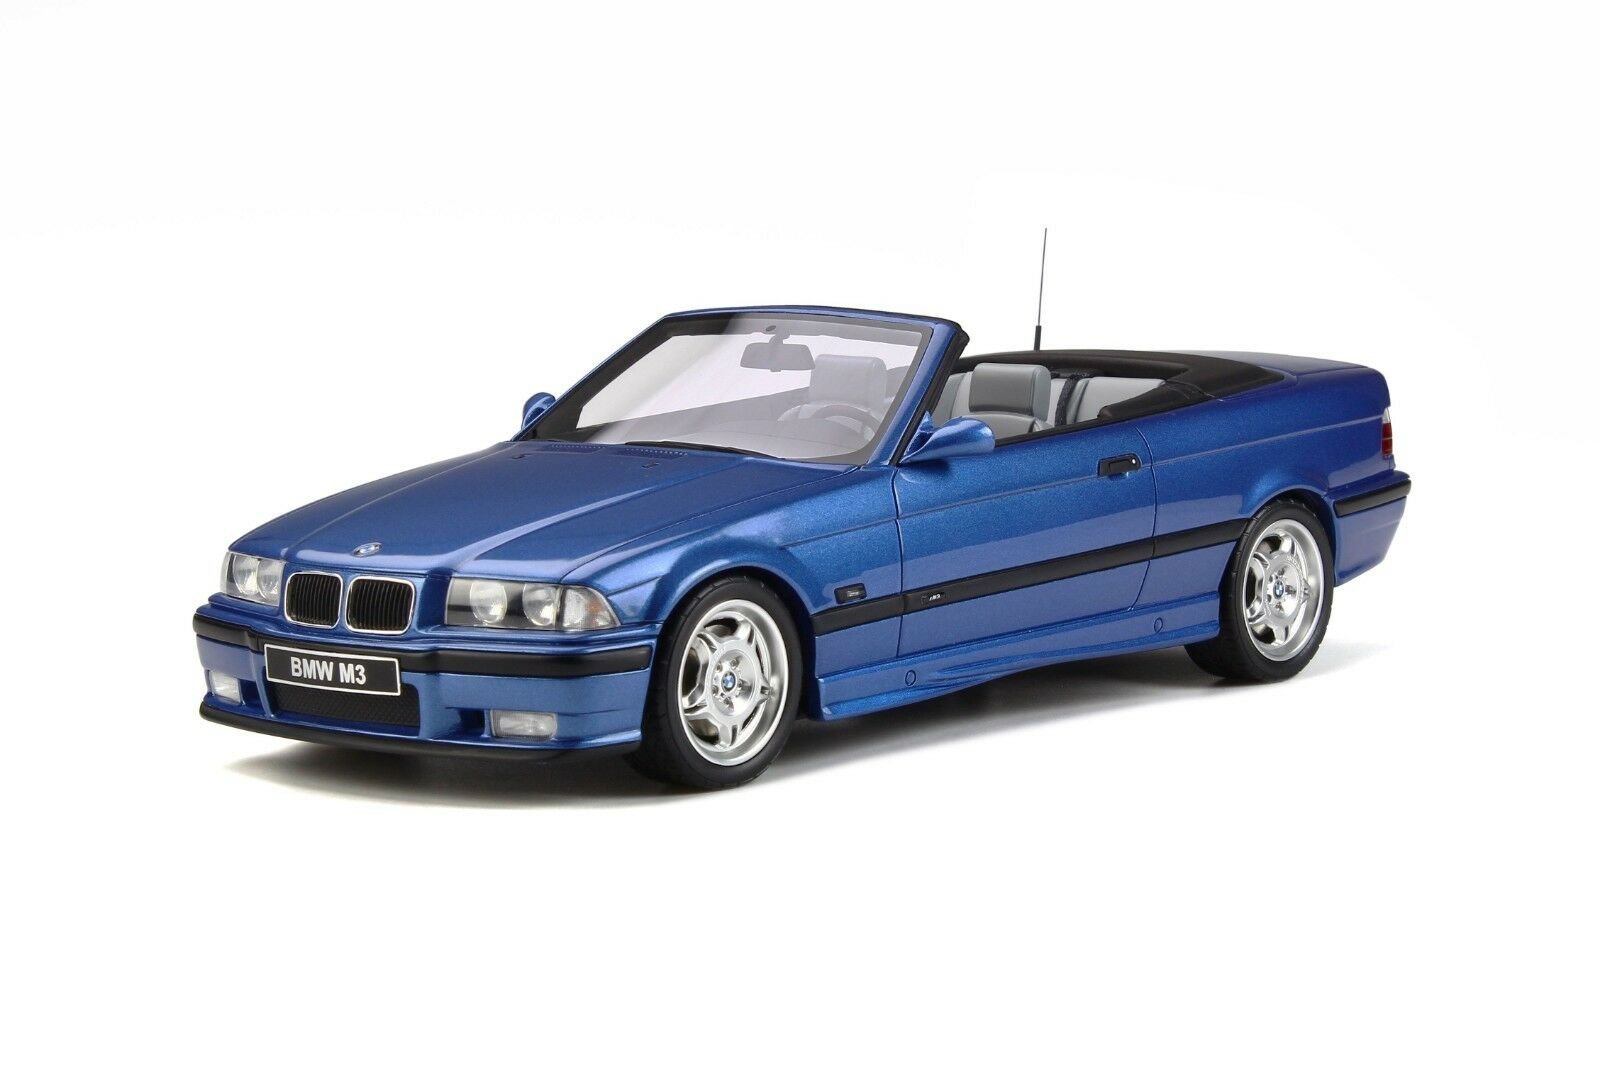 BMW M3 Evolution E36 Open Cabriolet Estoril blu Metallic 1999 Otto Mobile OT279